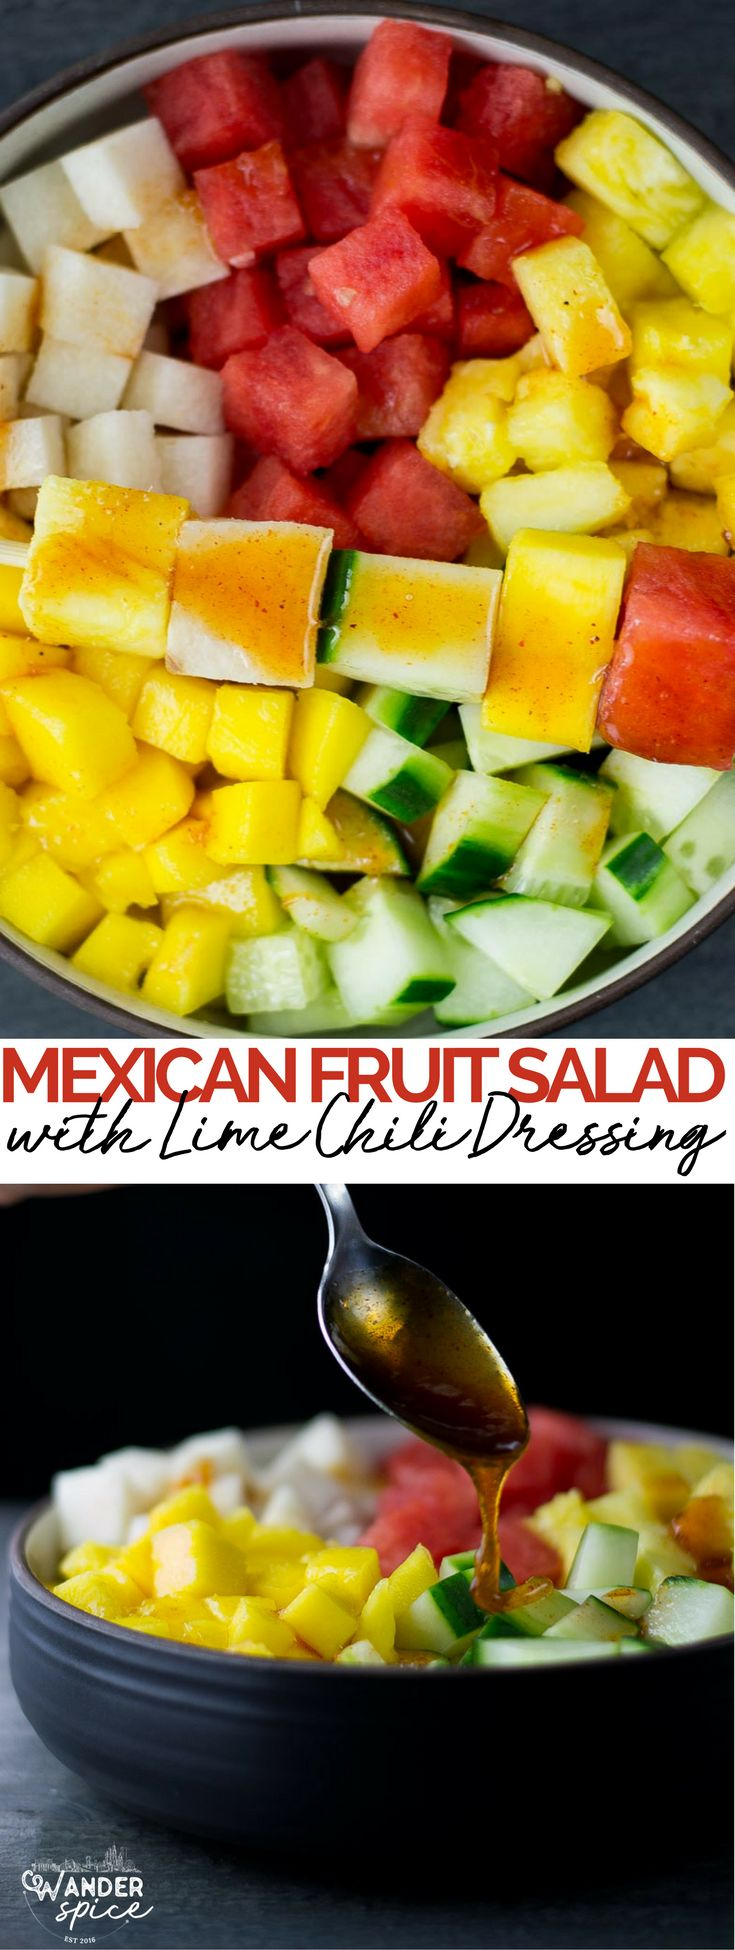 mexican fruit salad recipe | watermelon | cucumbers | jicama | pineapple | mango | vegan